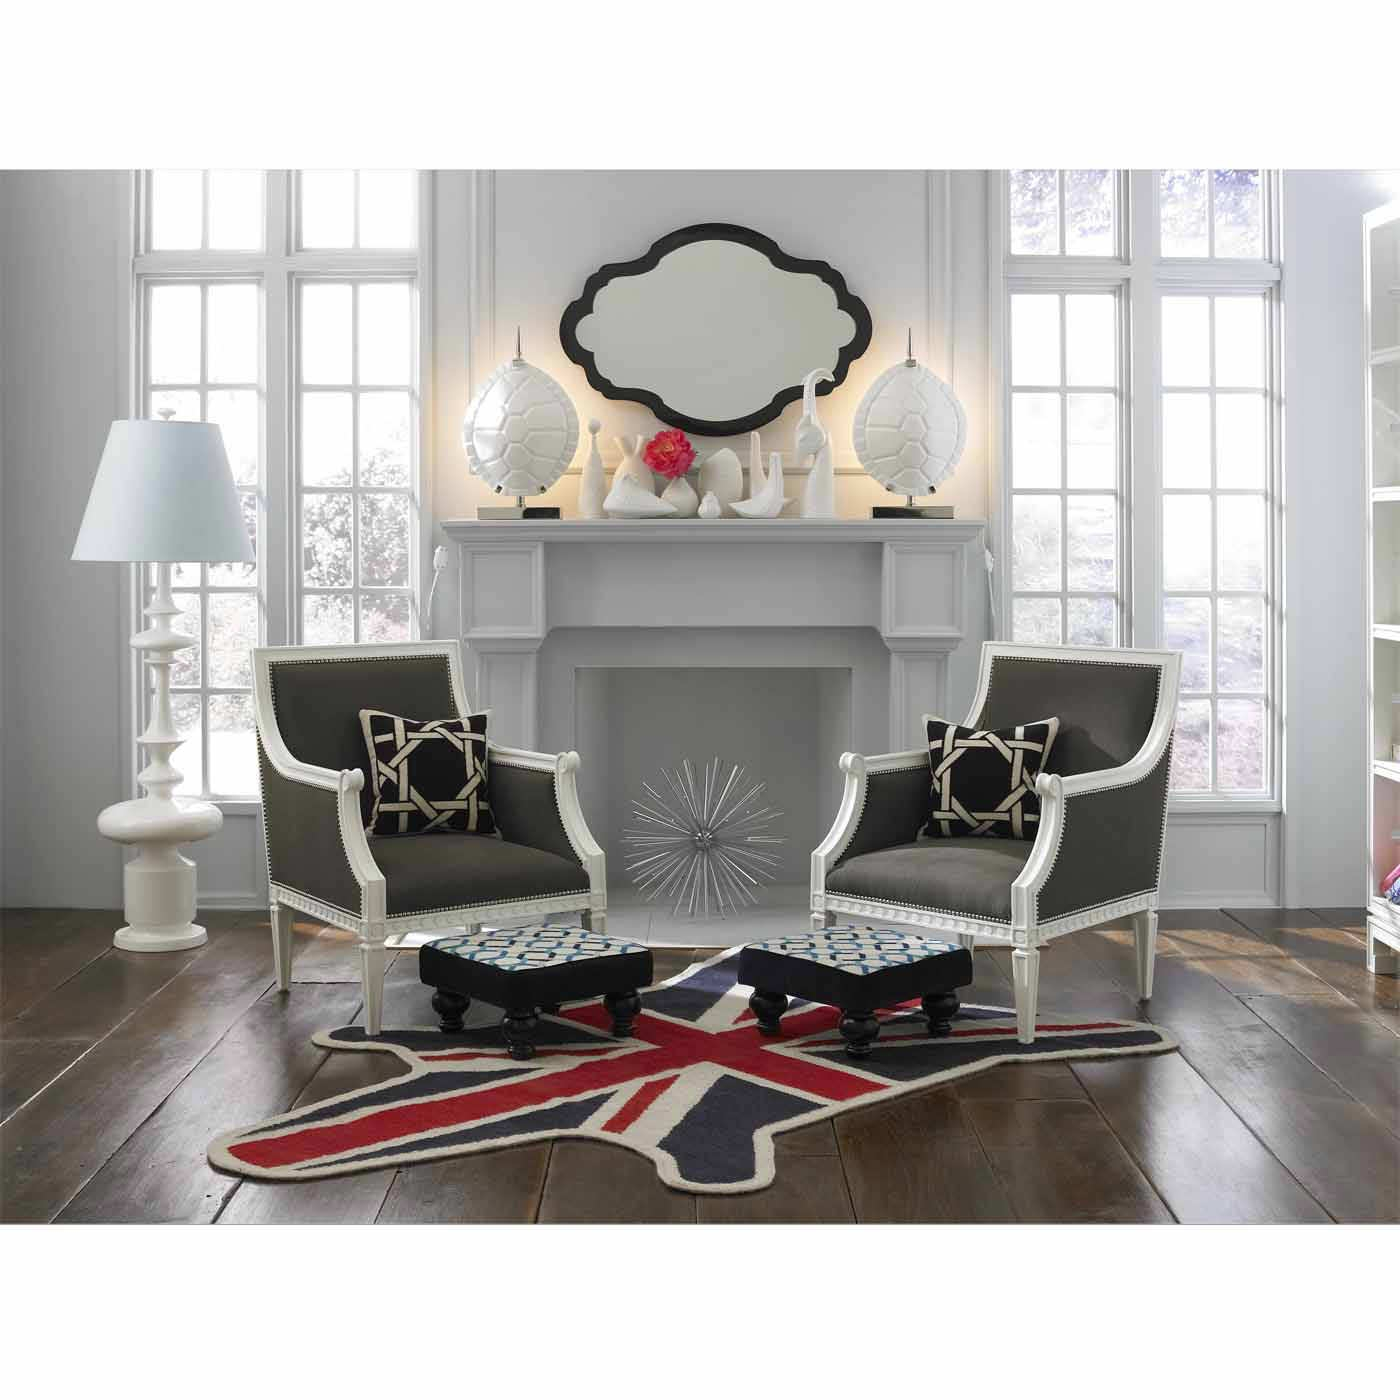 Zebra British Flag Peruvian Llama Flat Weave Rug Modern Holding Regarding British Flag Rugs (Image 14 of 15)